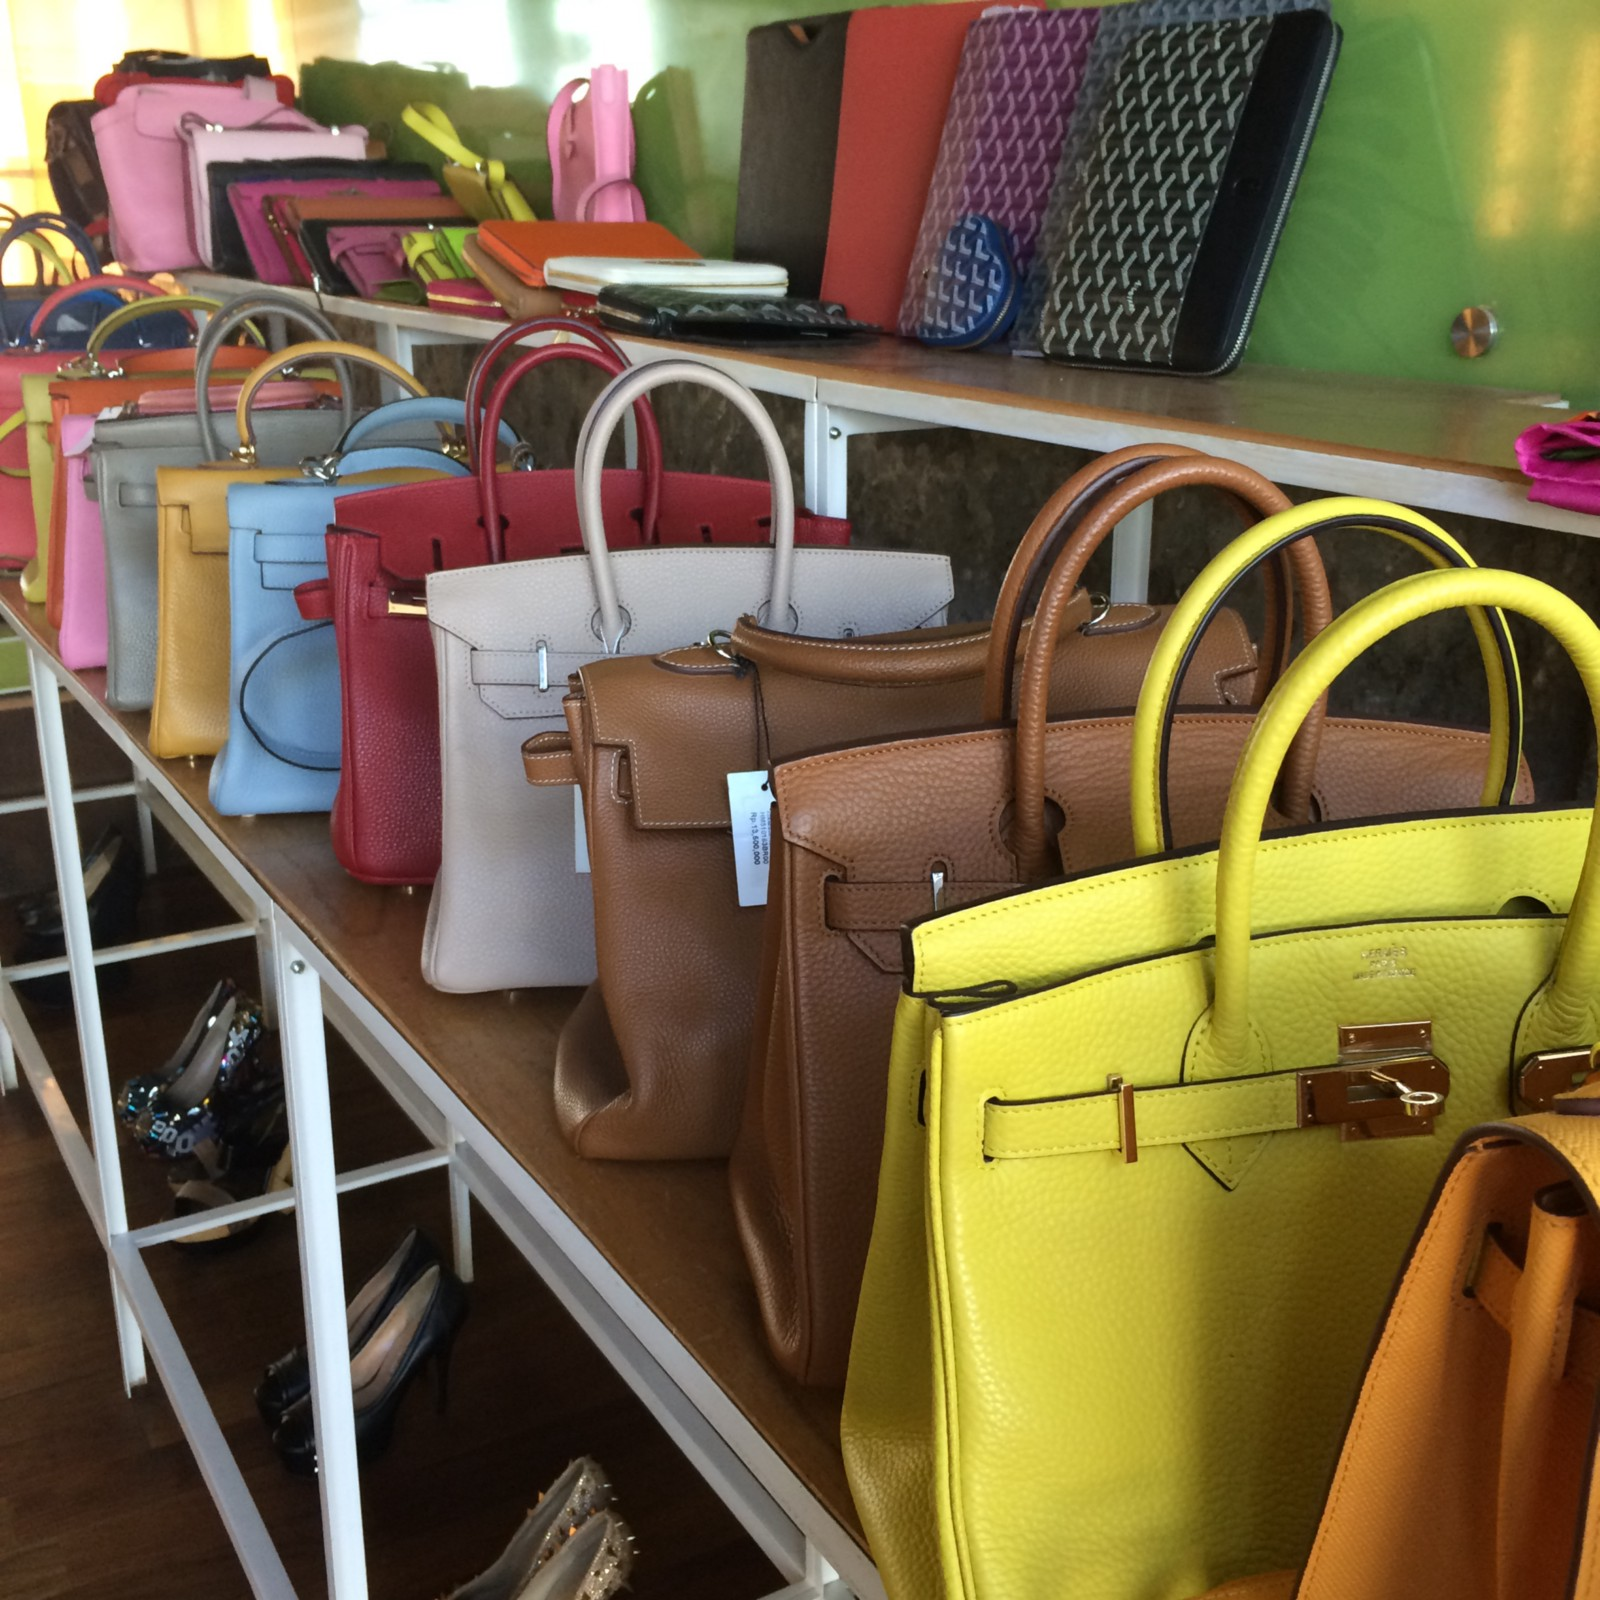 ed6be7eafc The Truth About Counterfeit Luxury Handbags – Becca Risa Luna – Medium